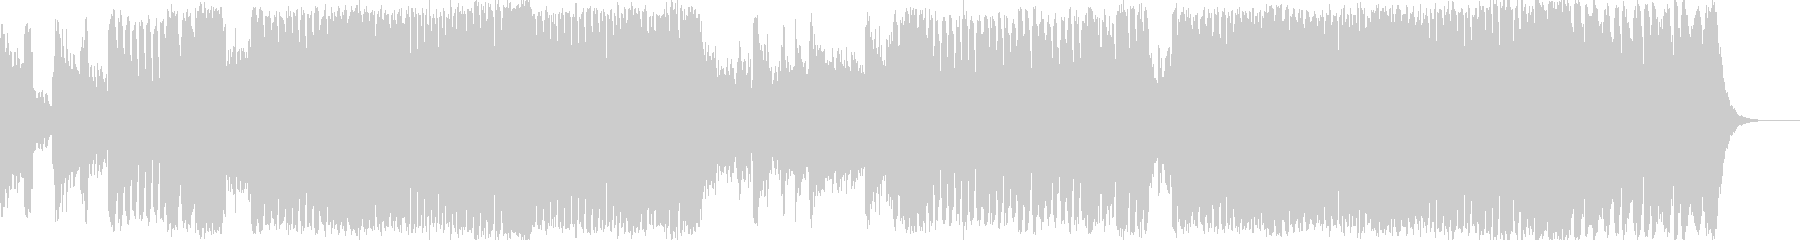 Fun, OP of unknown world exciting's unreproduced waveform